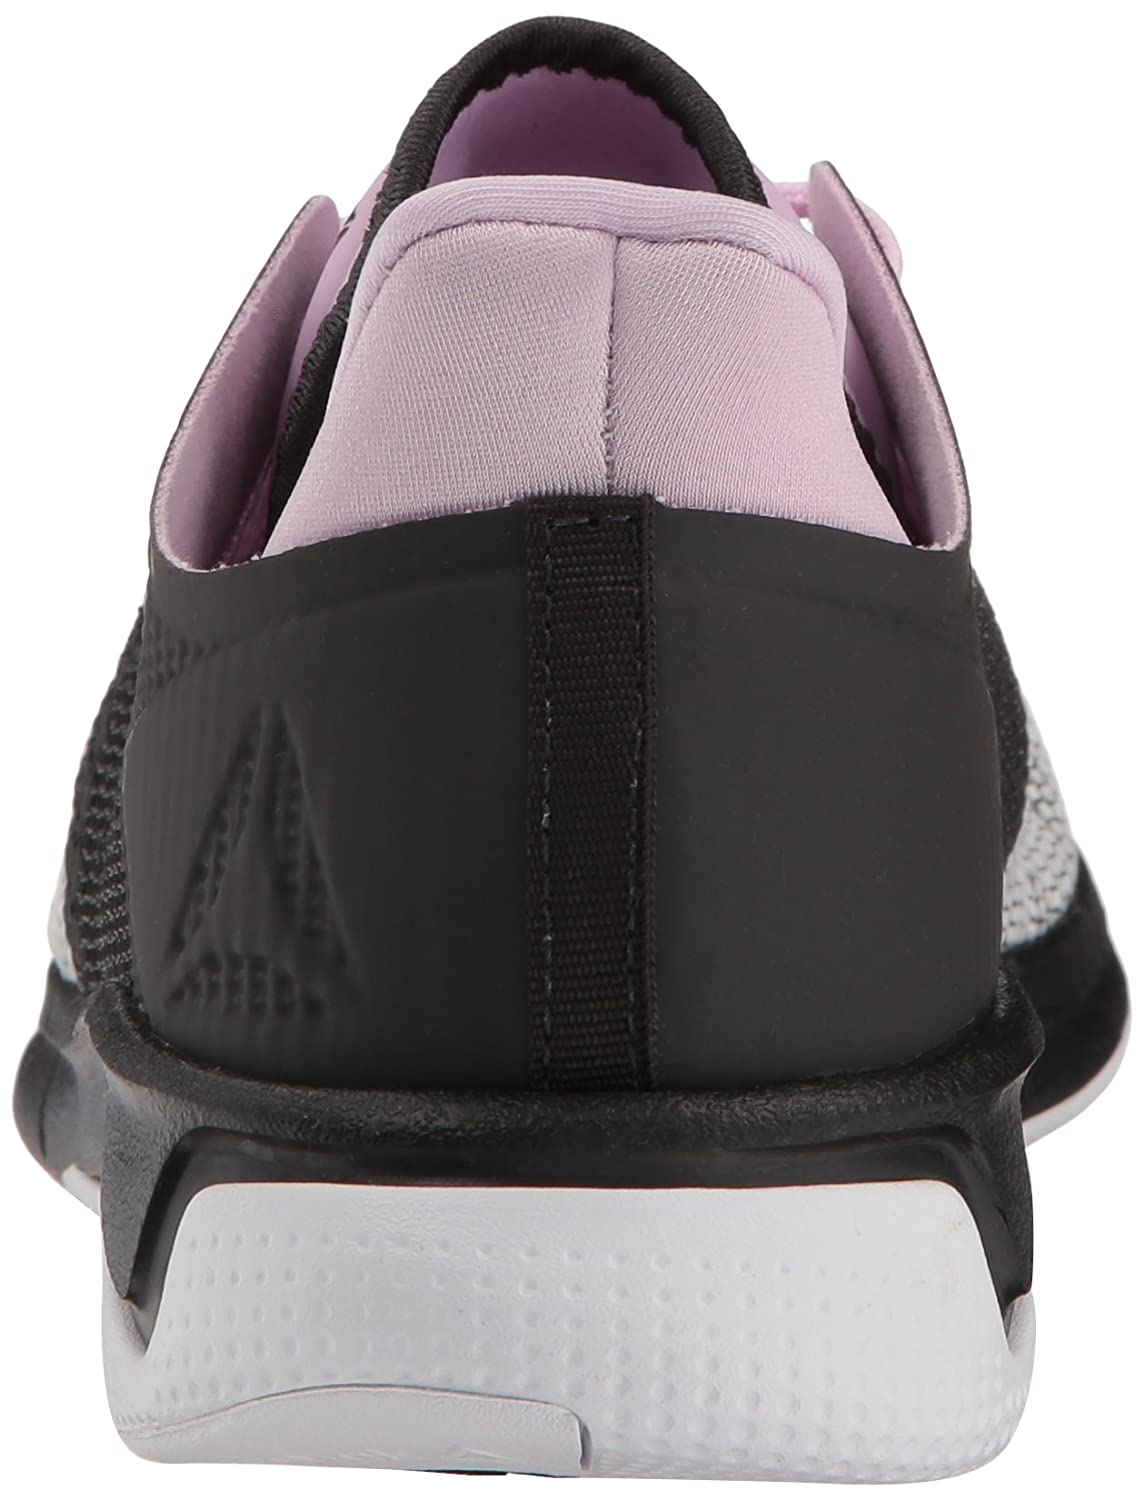 Reebok Women's Fast Flexweave B(M) Running Shoe B075ZMD1SV 7 B(M) Flexweave US|Coal/White/Moonglow/Acid Pink 7cd4f1